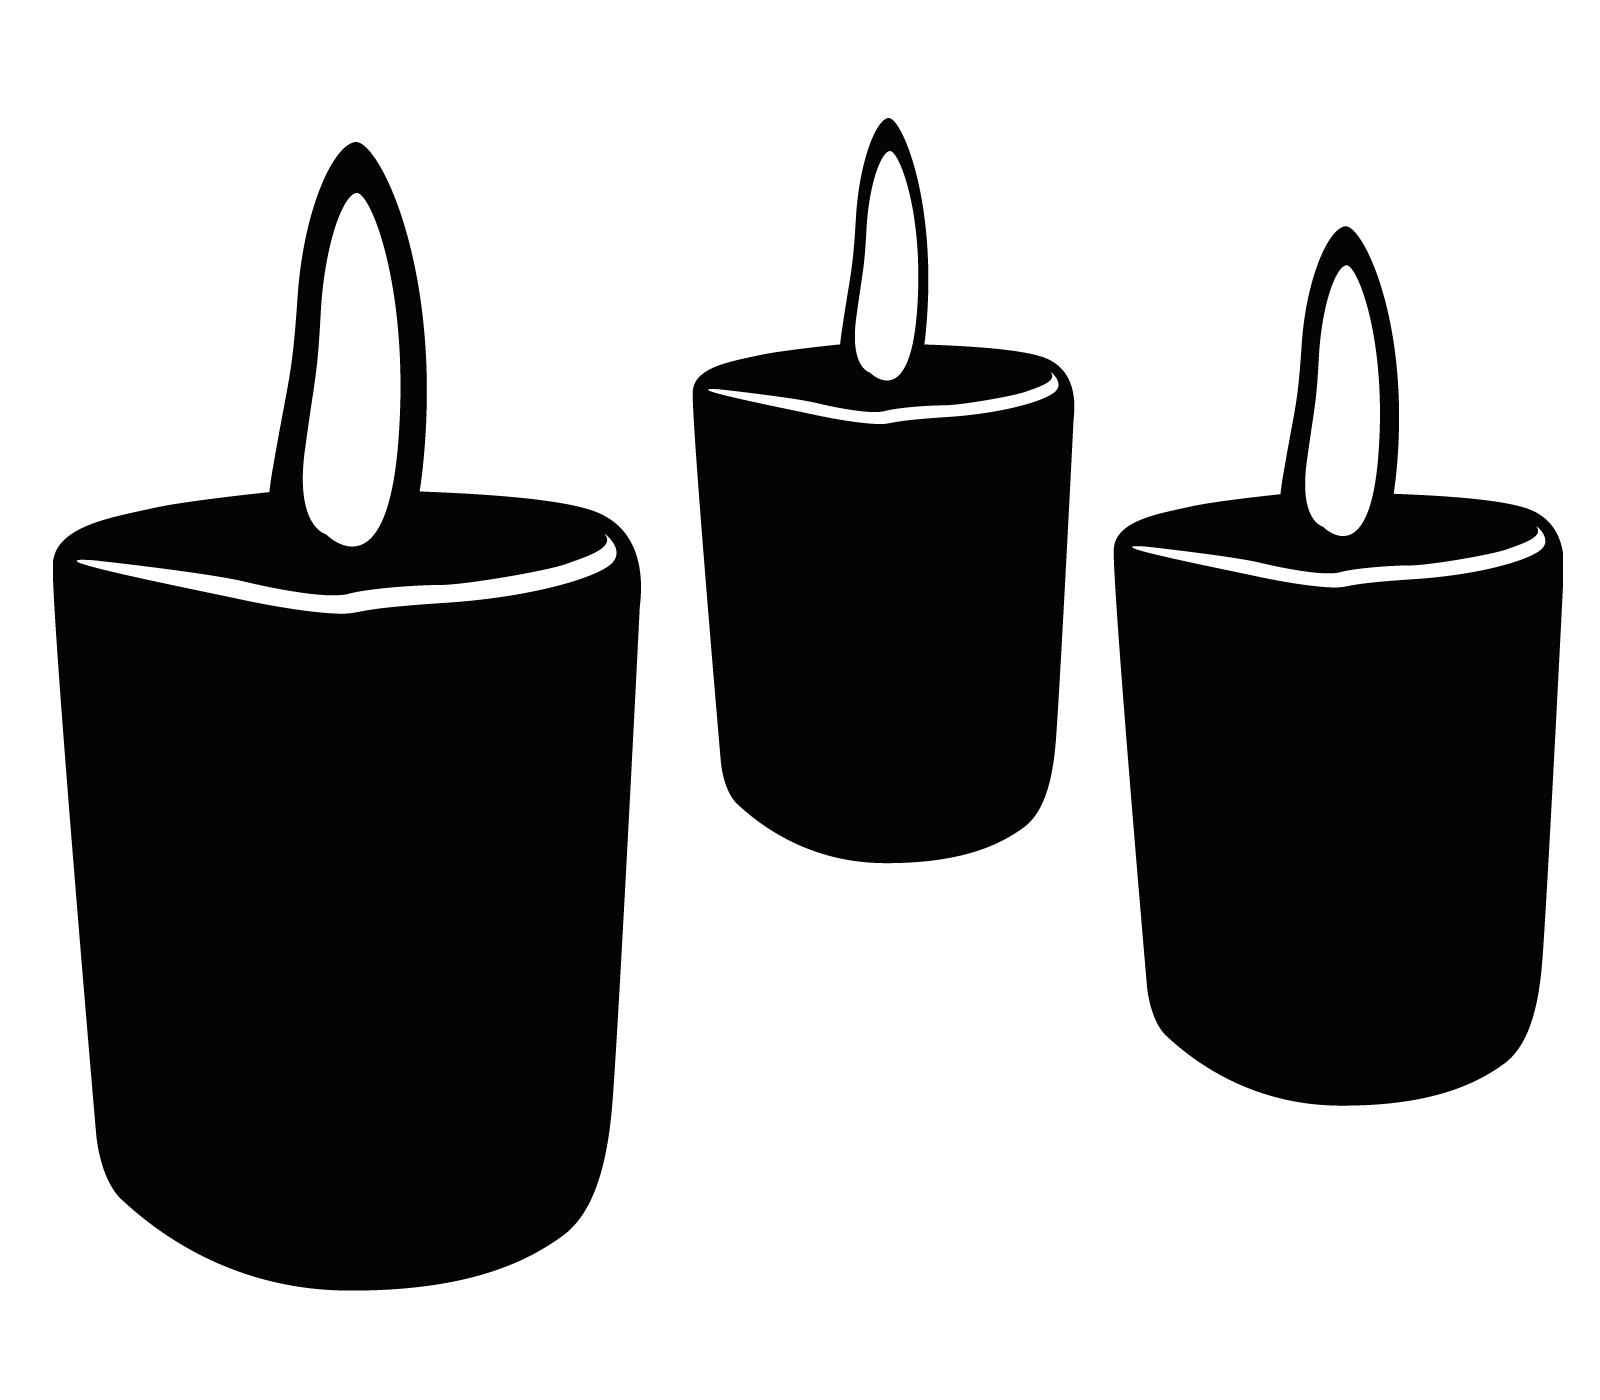 Votive candle clipart black and white.